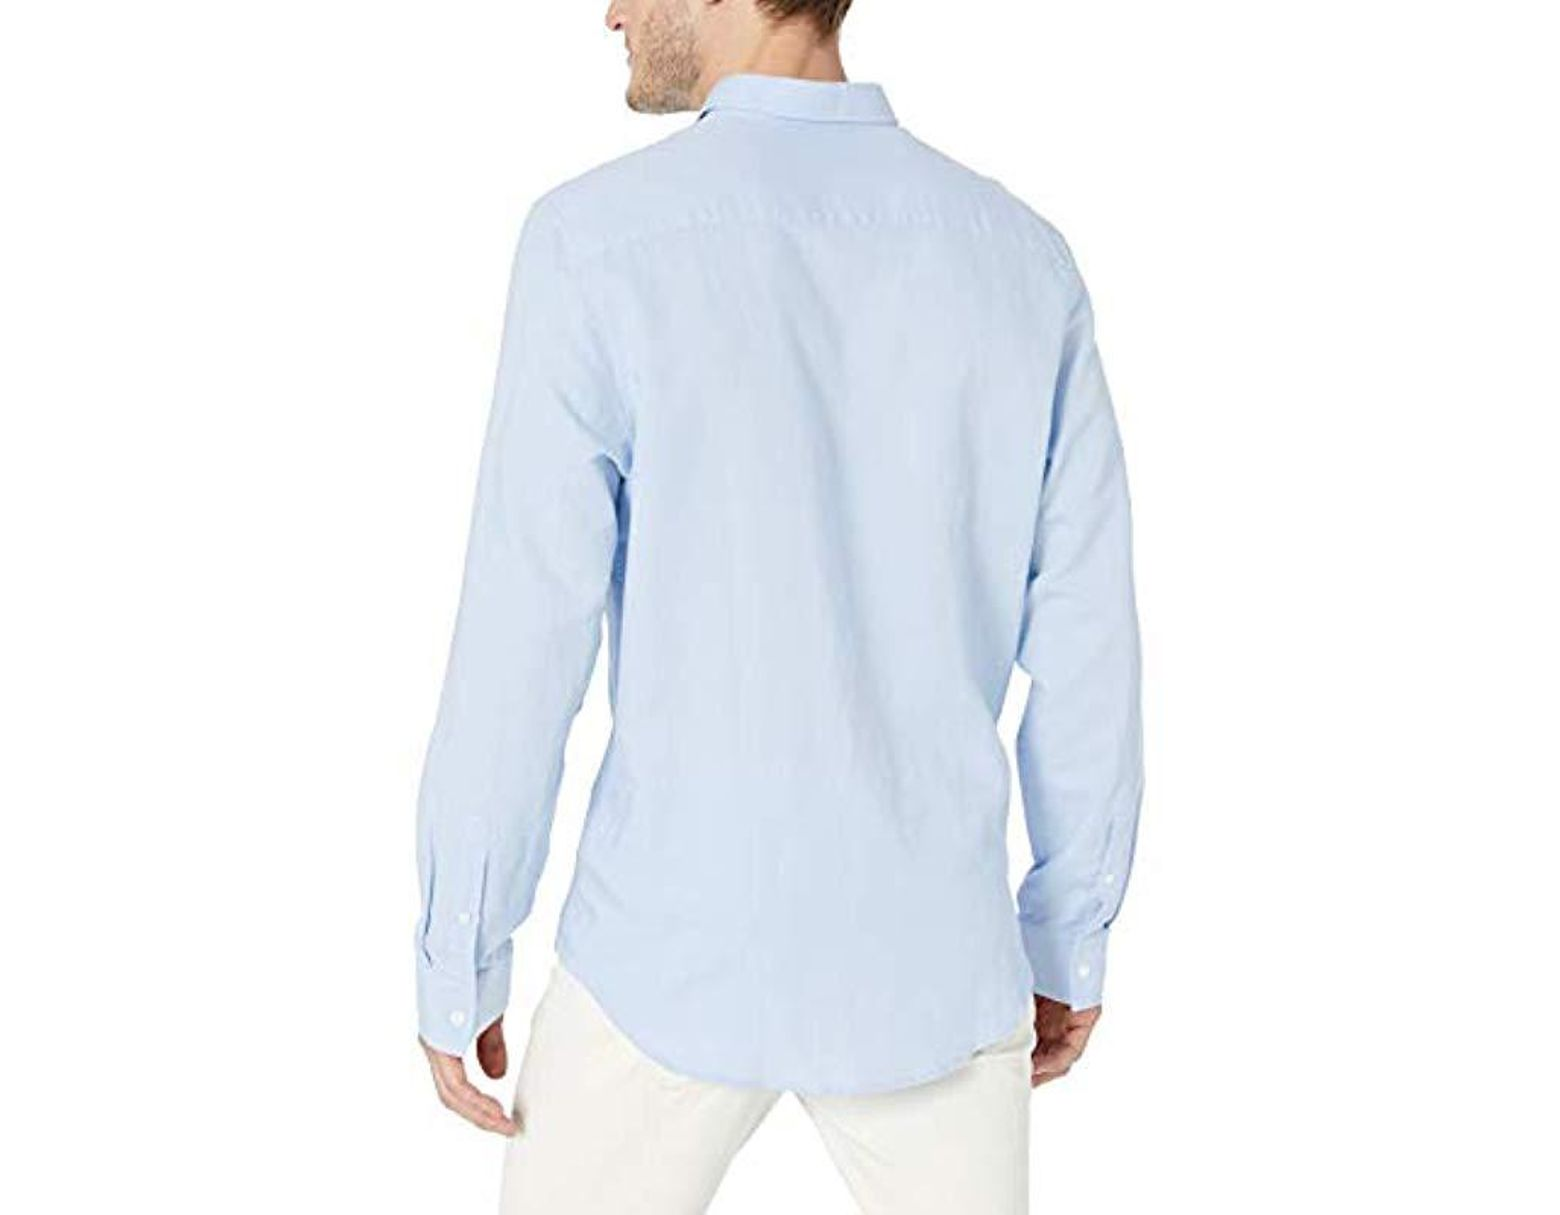 65a13965ab1f Lyst - Calvin Klein Long Sleeve Lightweight Cotton Linen Button Down Shirt  in Blue for Men